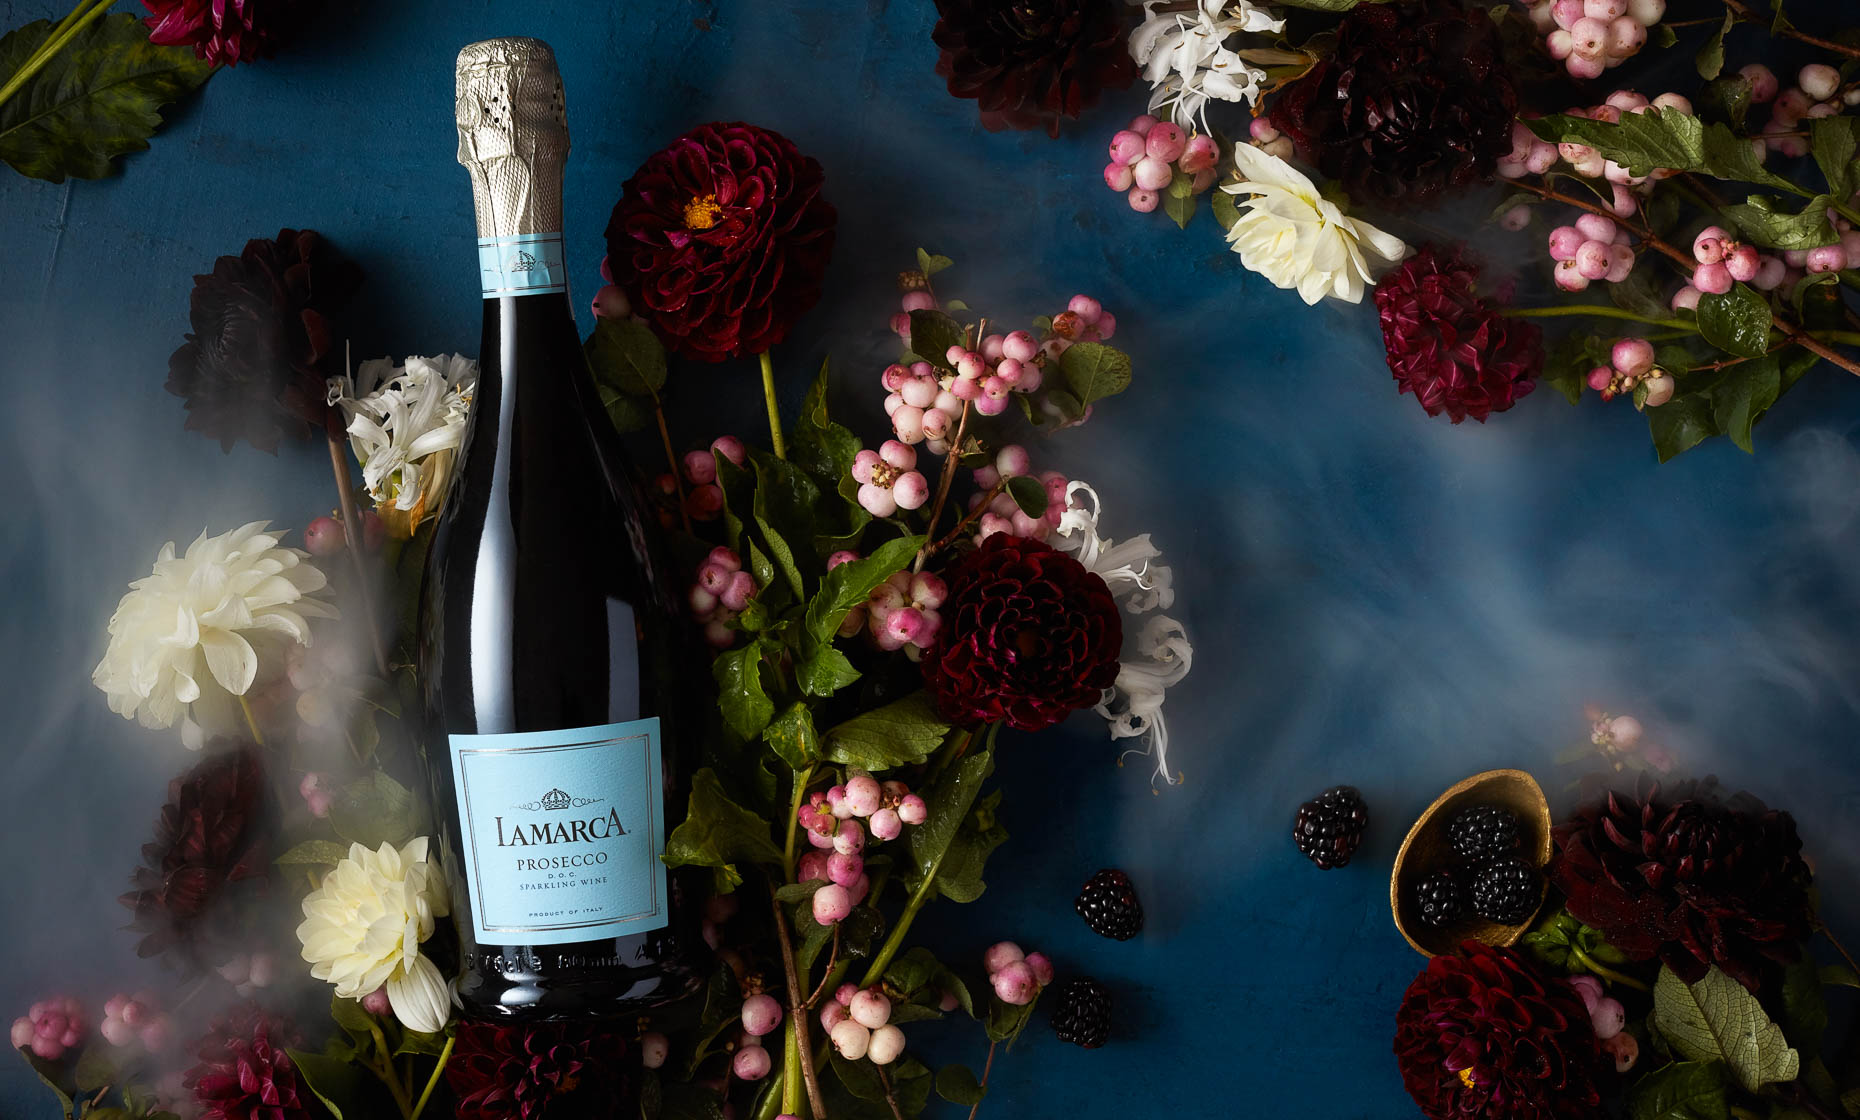 lamarca prosecco still life photography with flowers